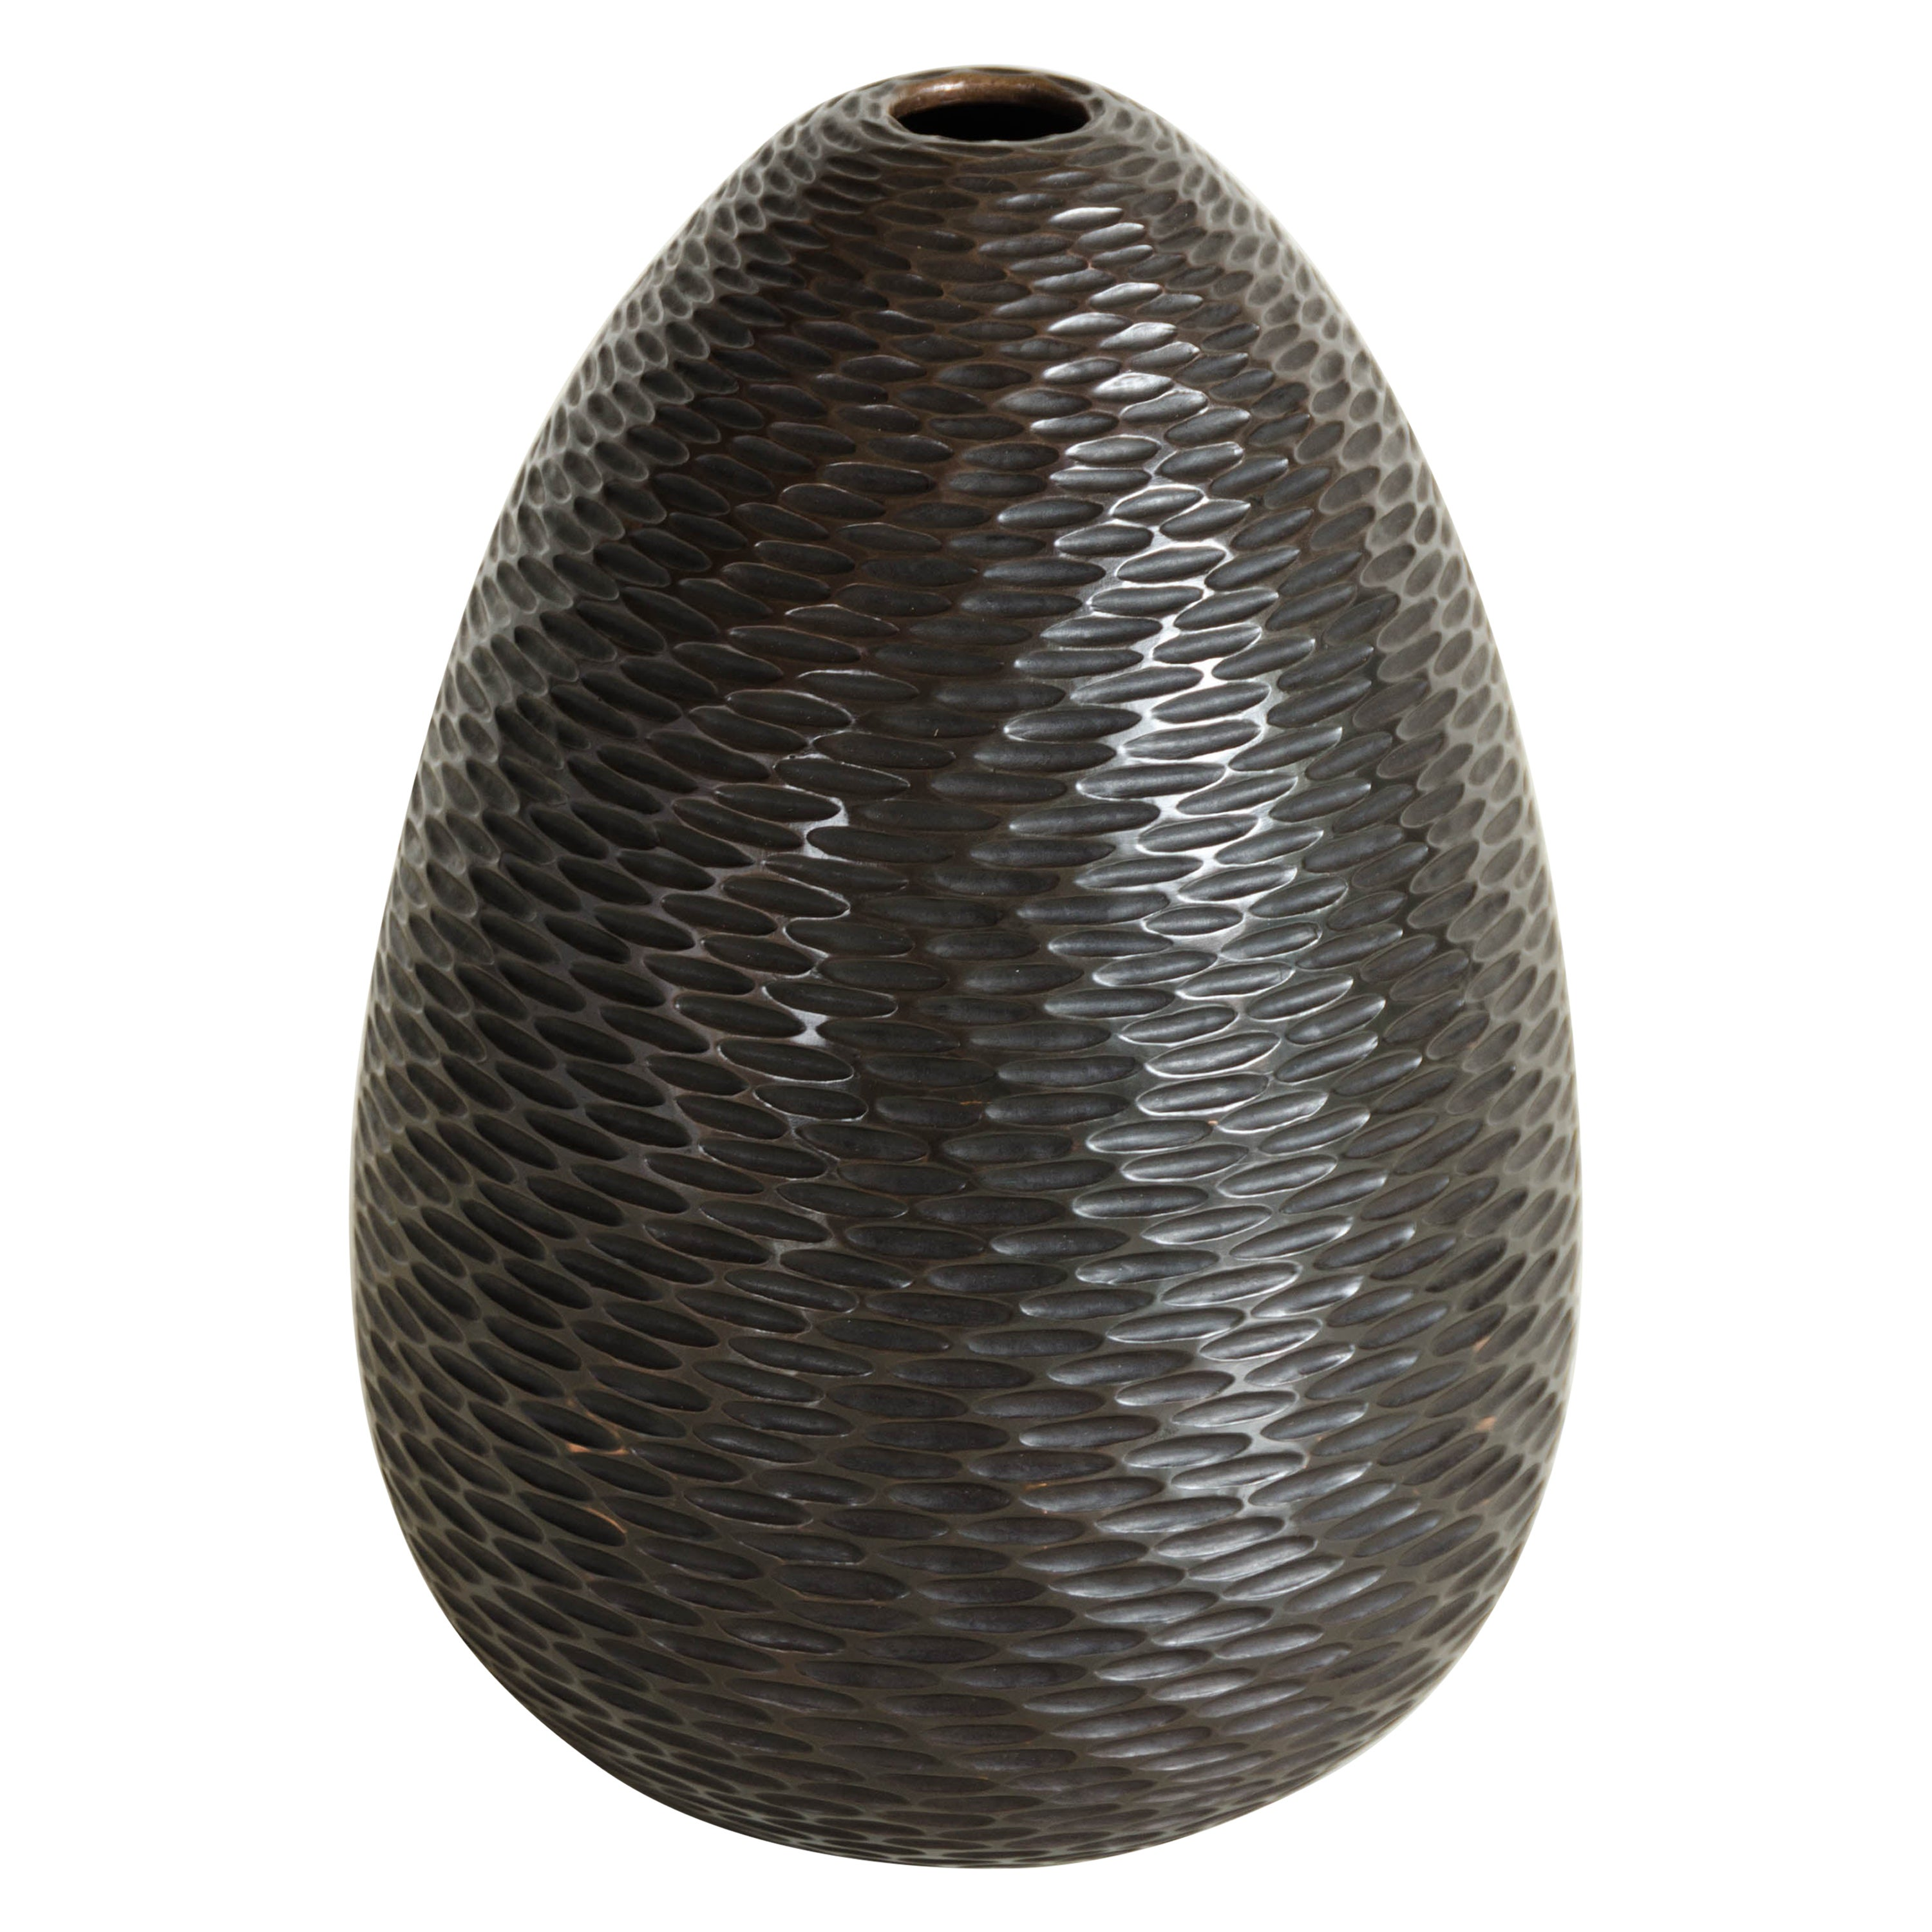 Pino Vase in Antique Copper by Robert Kuo, Limited Edition